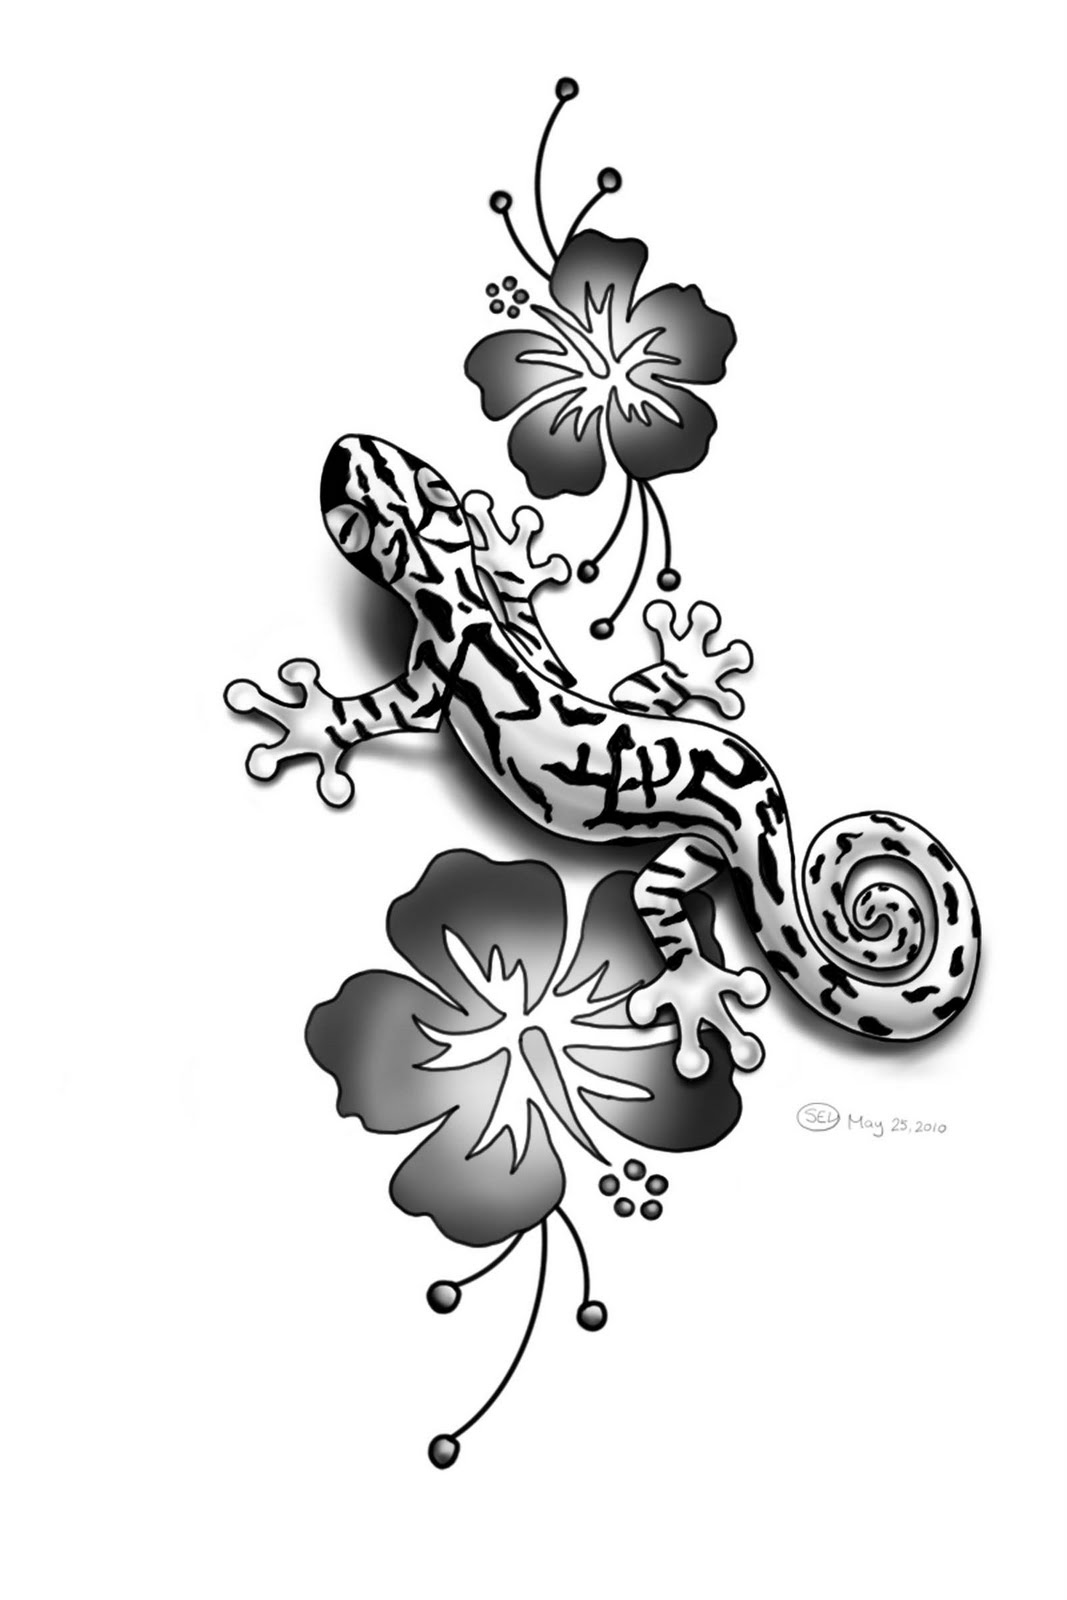 Gecko Lizard Tattoo Designs